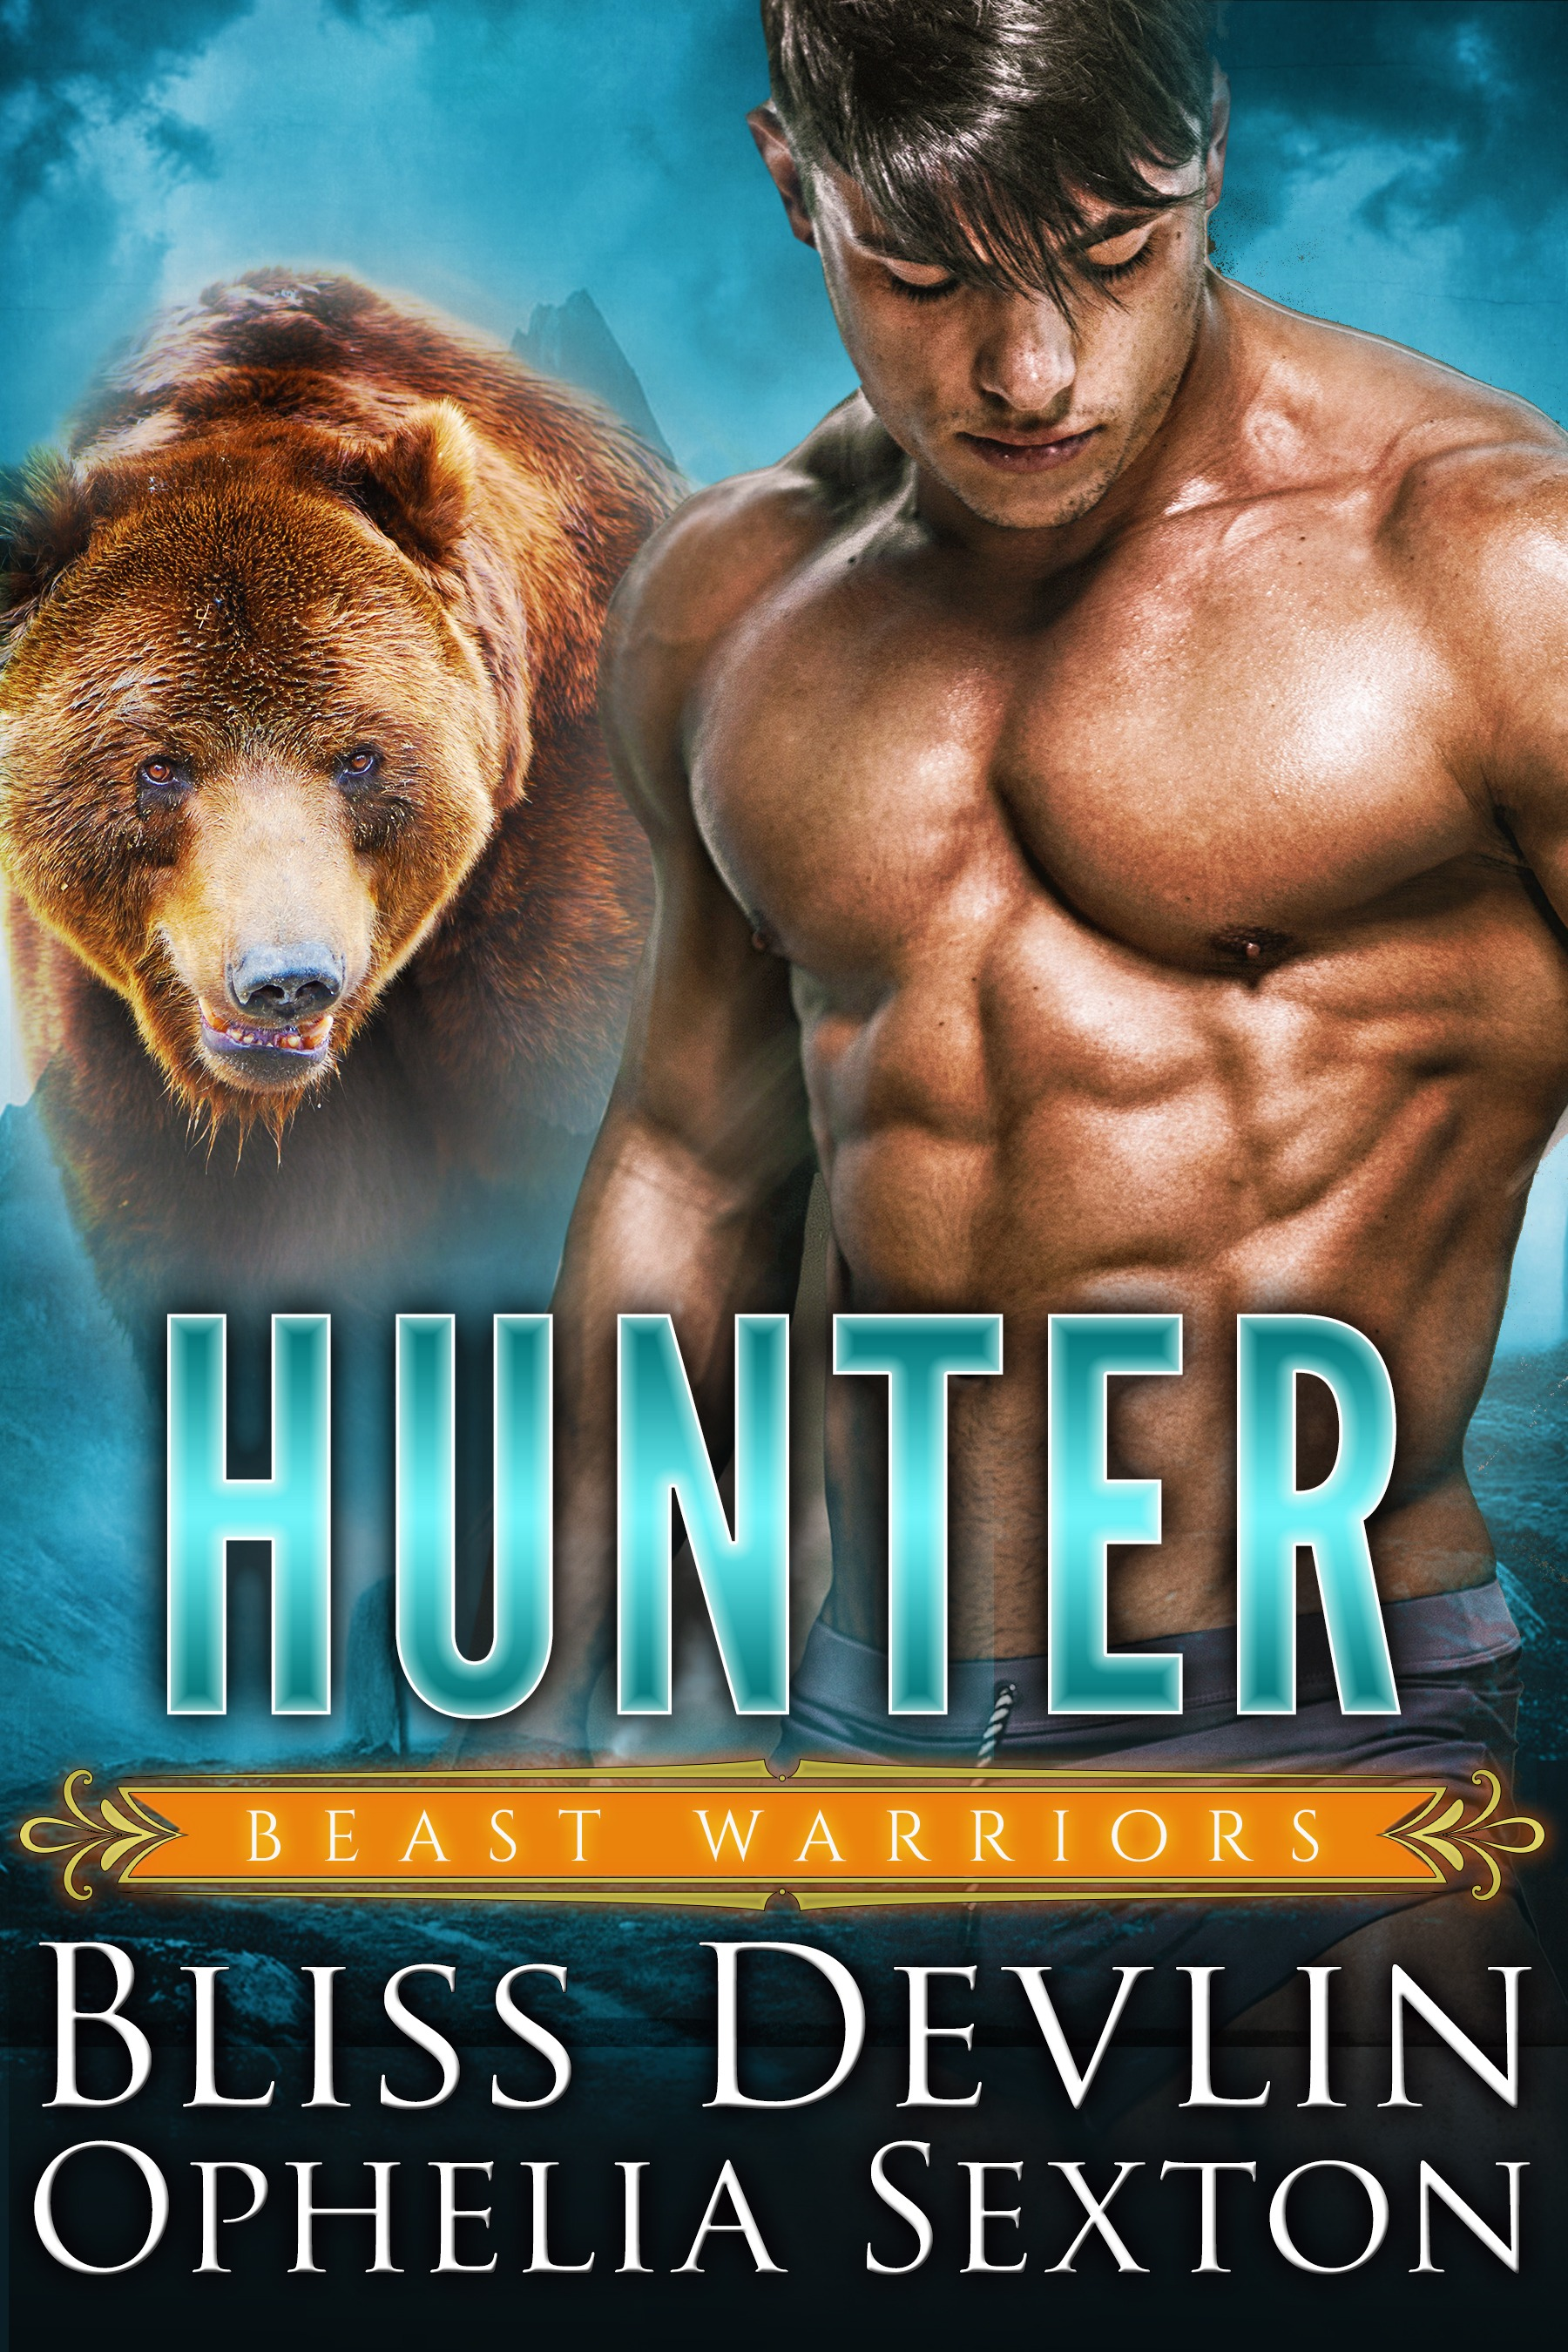 Hunter by Bliss Devlin and Ophelia Sexton